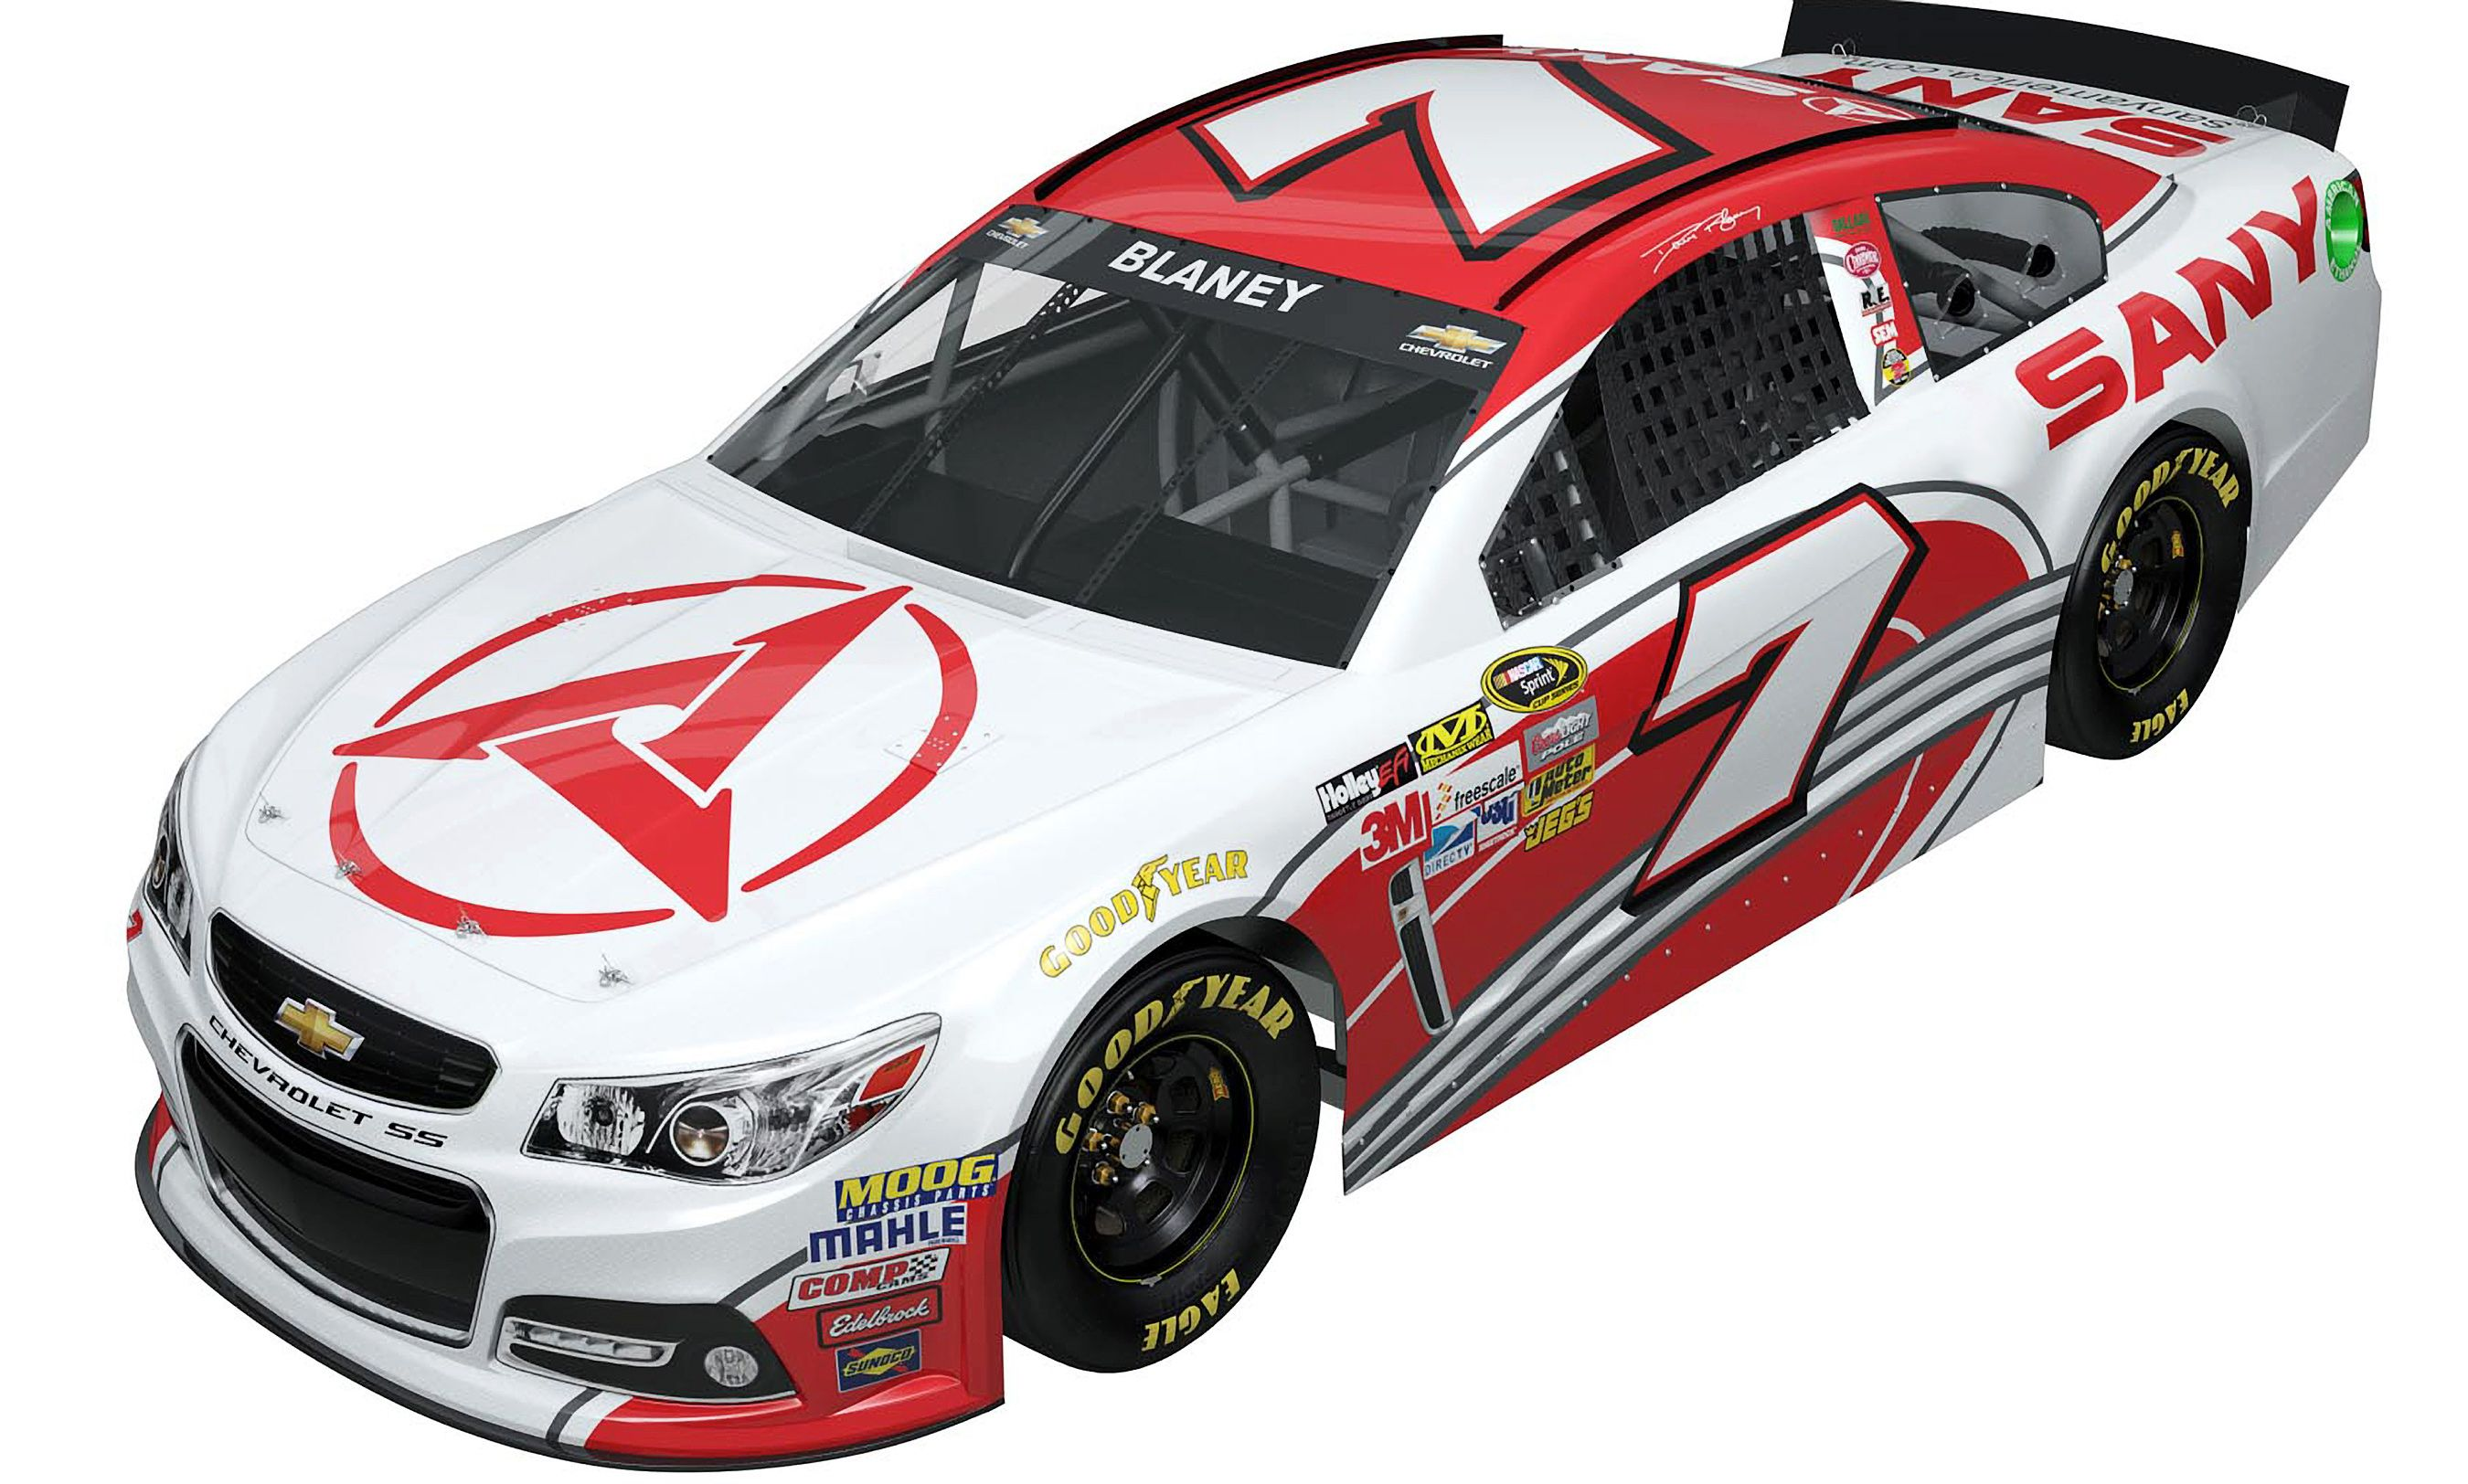 Dave Blaney's #7 SANY Chevy for 2013